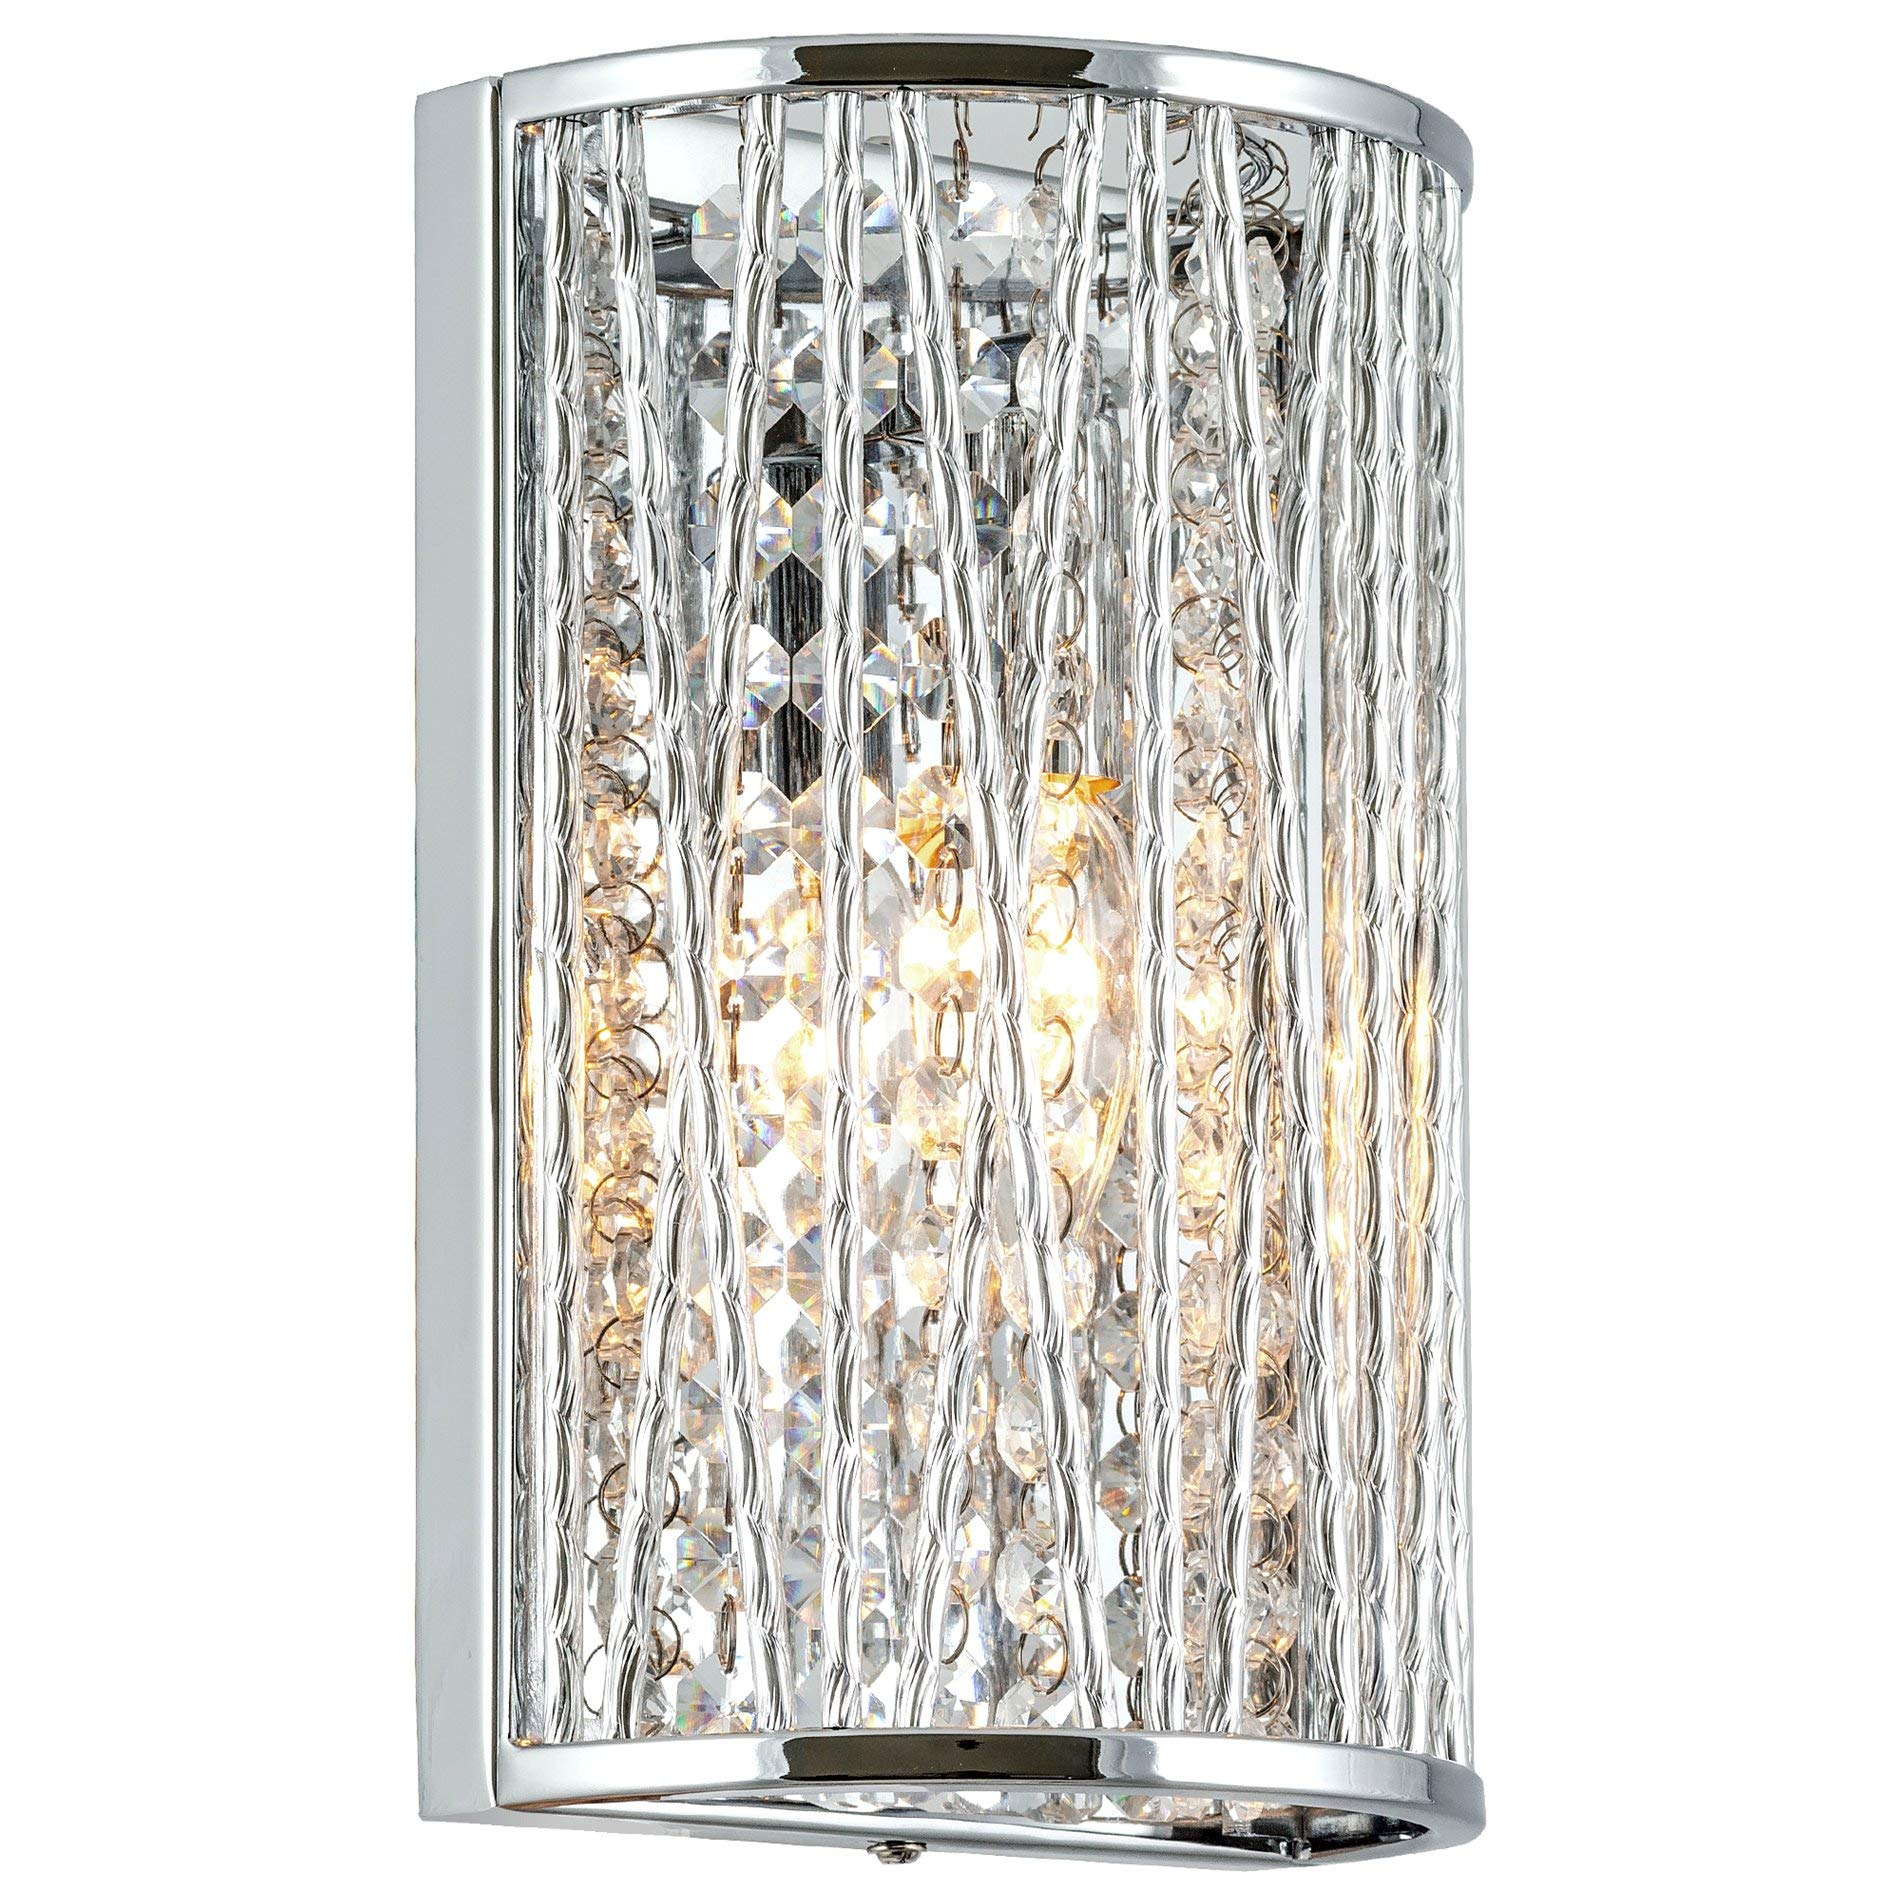 """Kira Home Claire 9"""" Modern Chic Wall Sconce + Hanging Crystals, Rounded Metal Frame, Chrome Finish"""